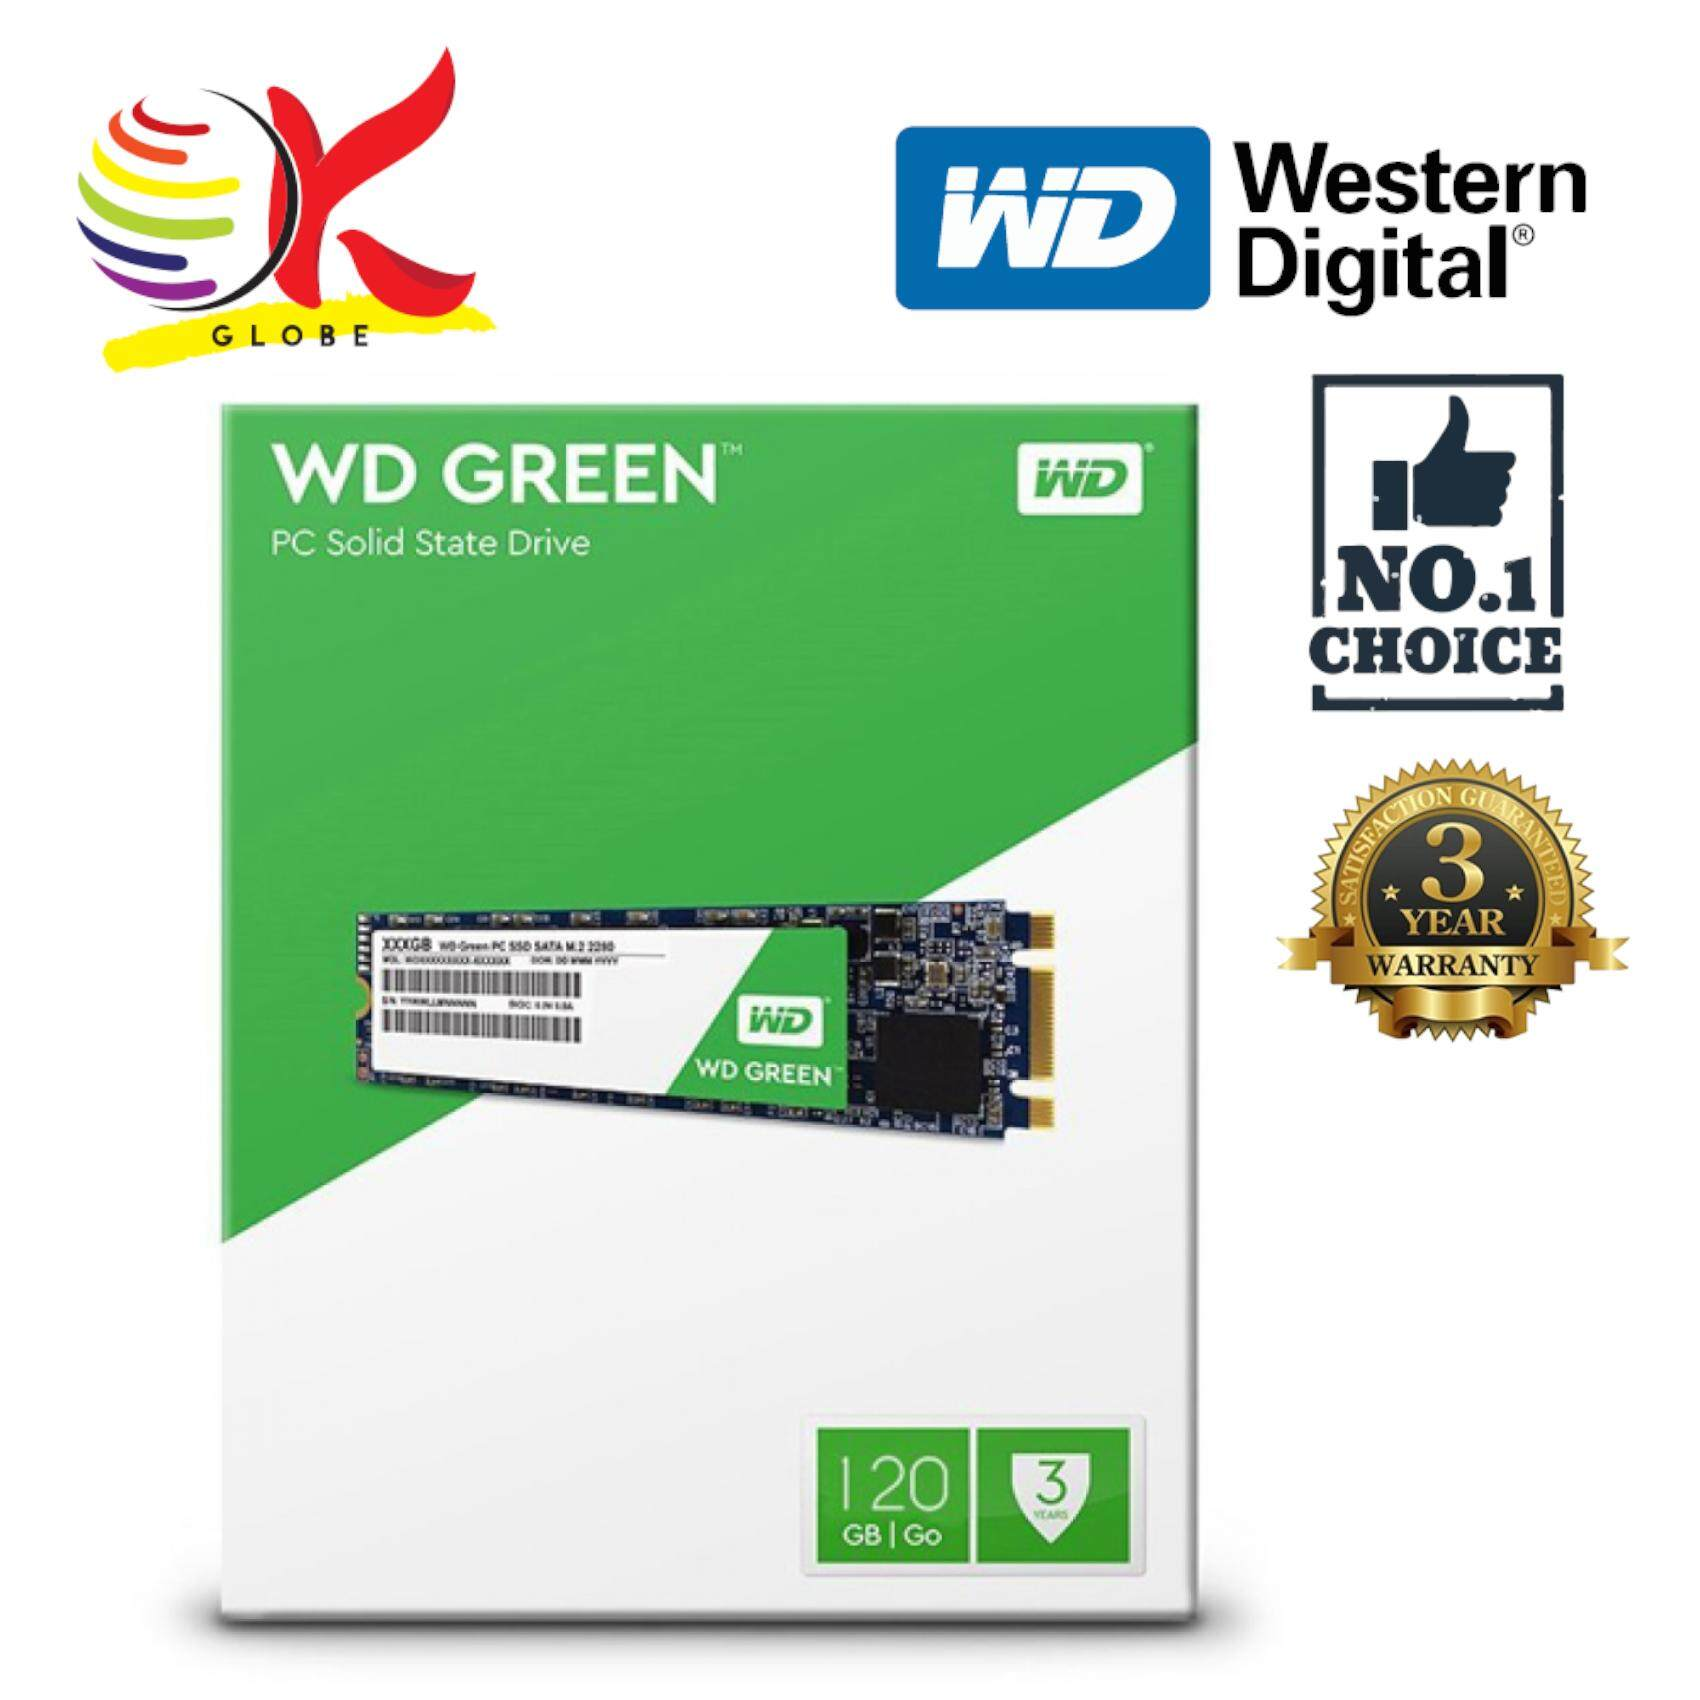 Wd Green Buy At Best Price In Malaysia Ssd 240gb 25 Sata Western Digital Pc M2 2280 3d Nand Solid State Drive